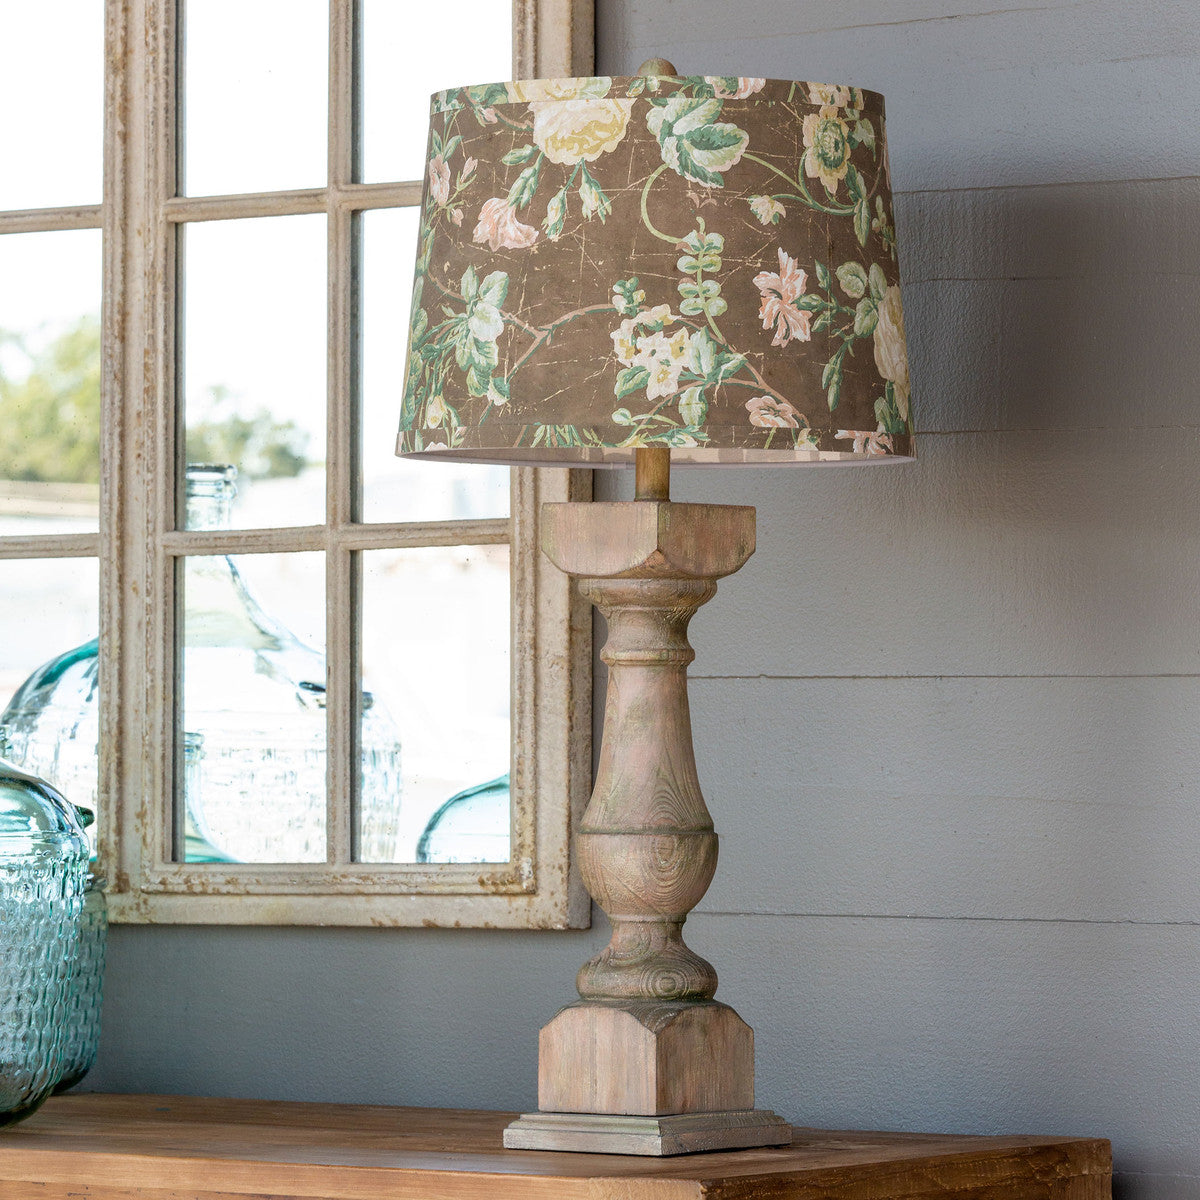 Wooden Table Lamp with Flowered Shade